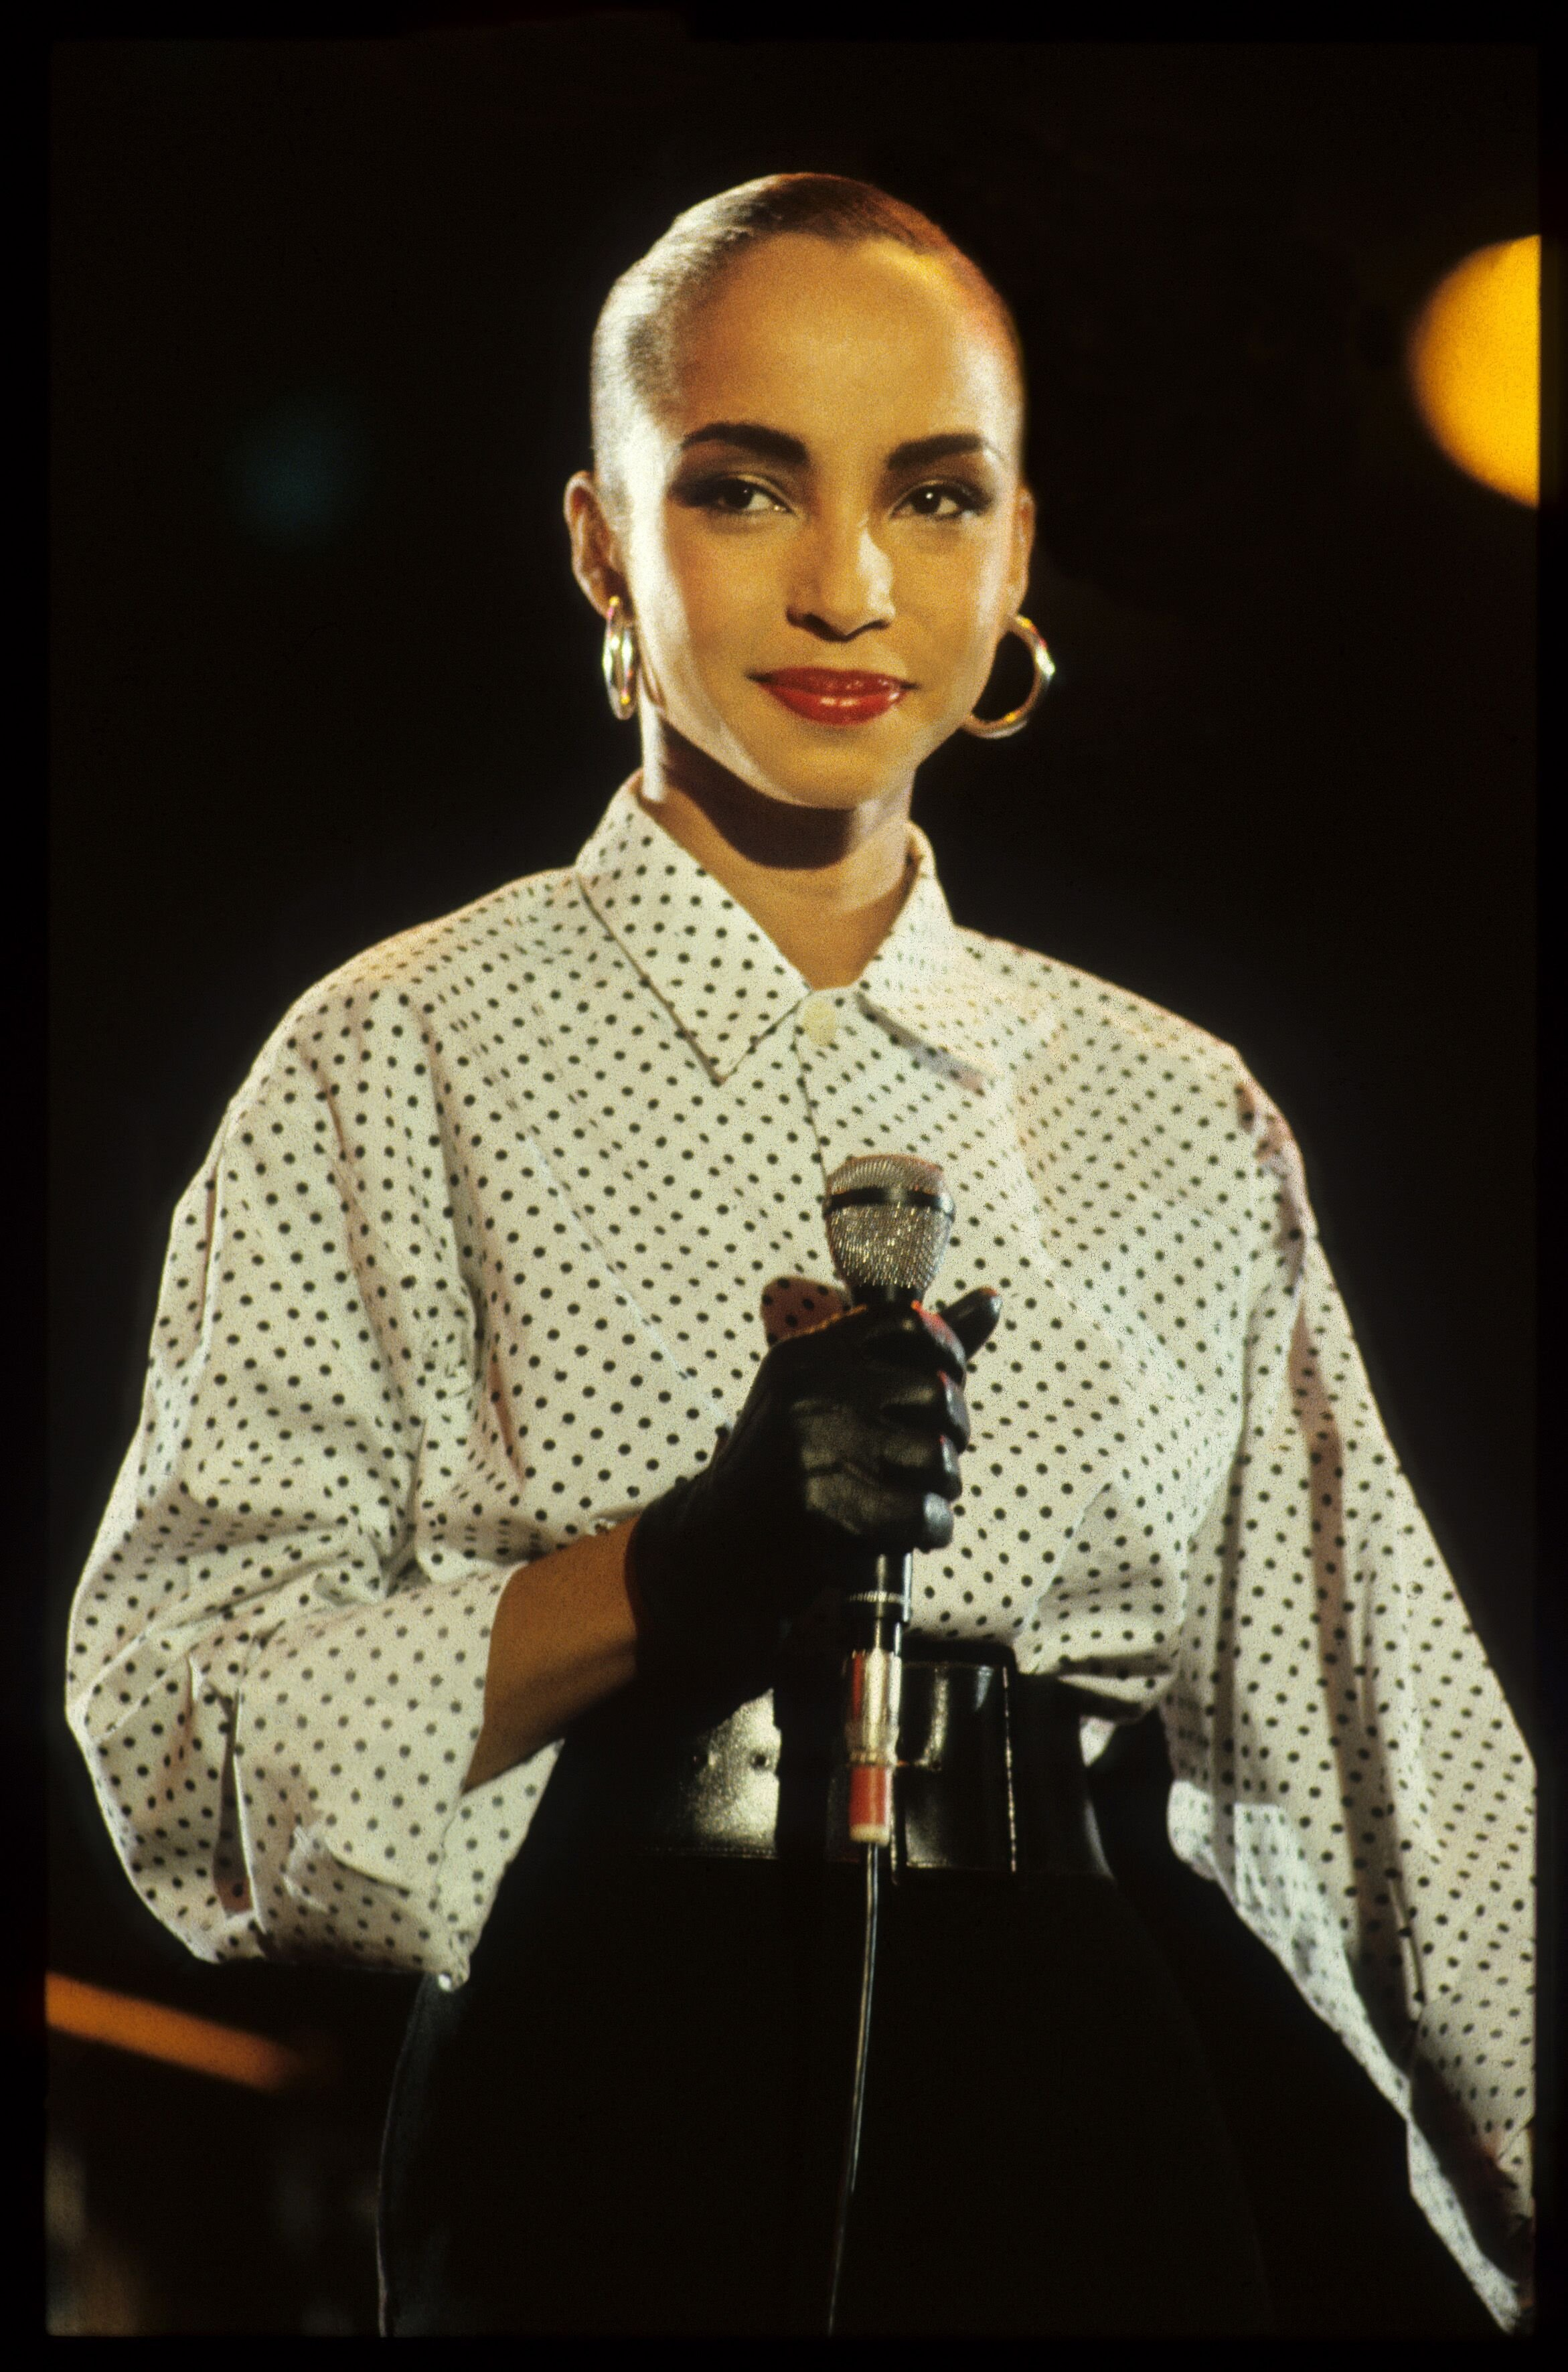 Sade performs on stage at Veronica Rocknight, Ahoy, Rotterdam, Netherlands, 21st September 1984 | Photo: Getty Images